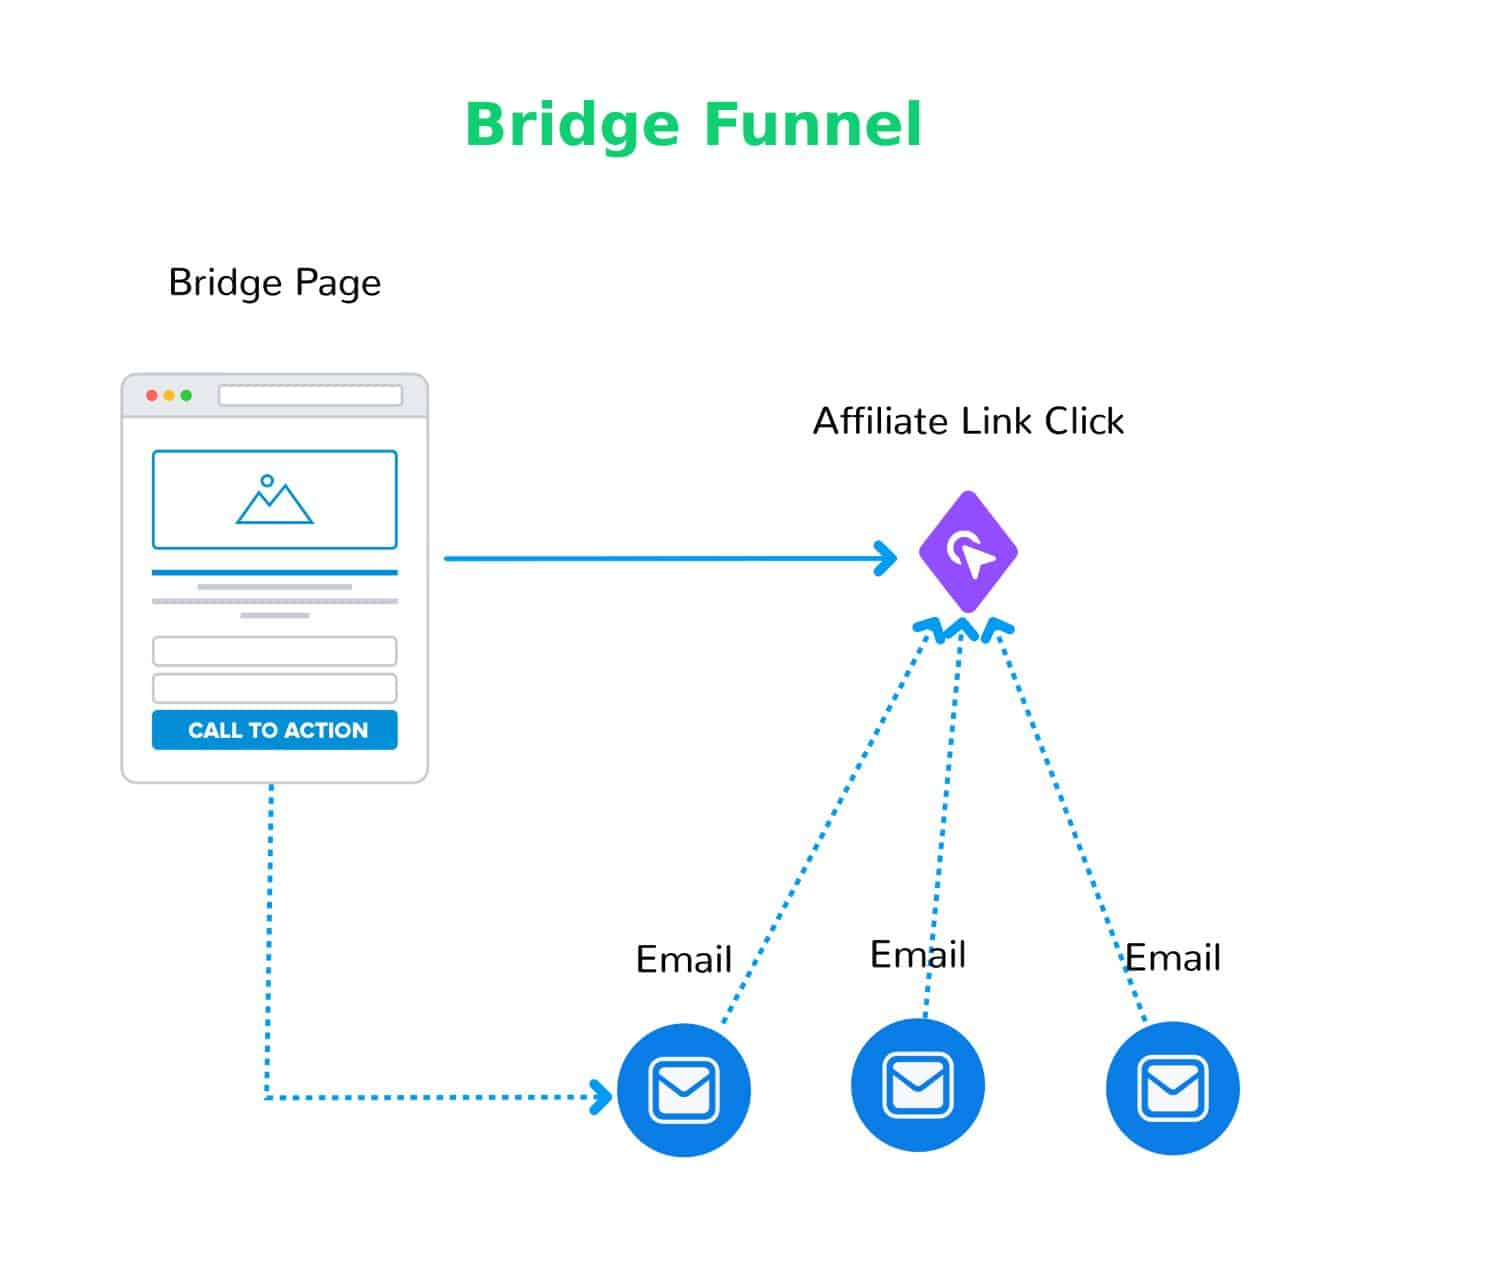 Bridge Page Funnel